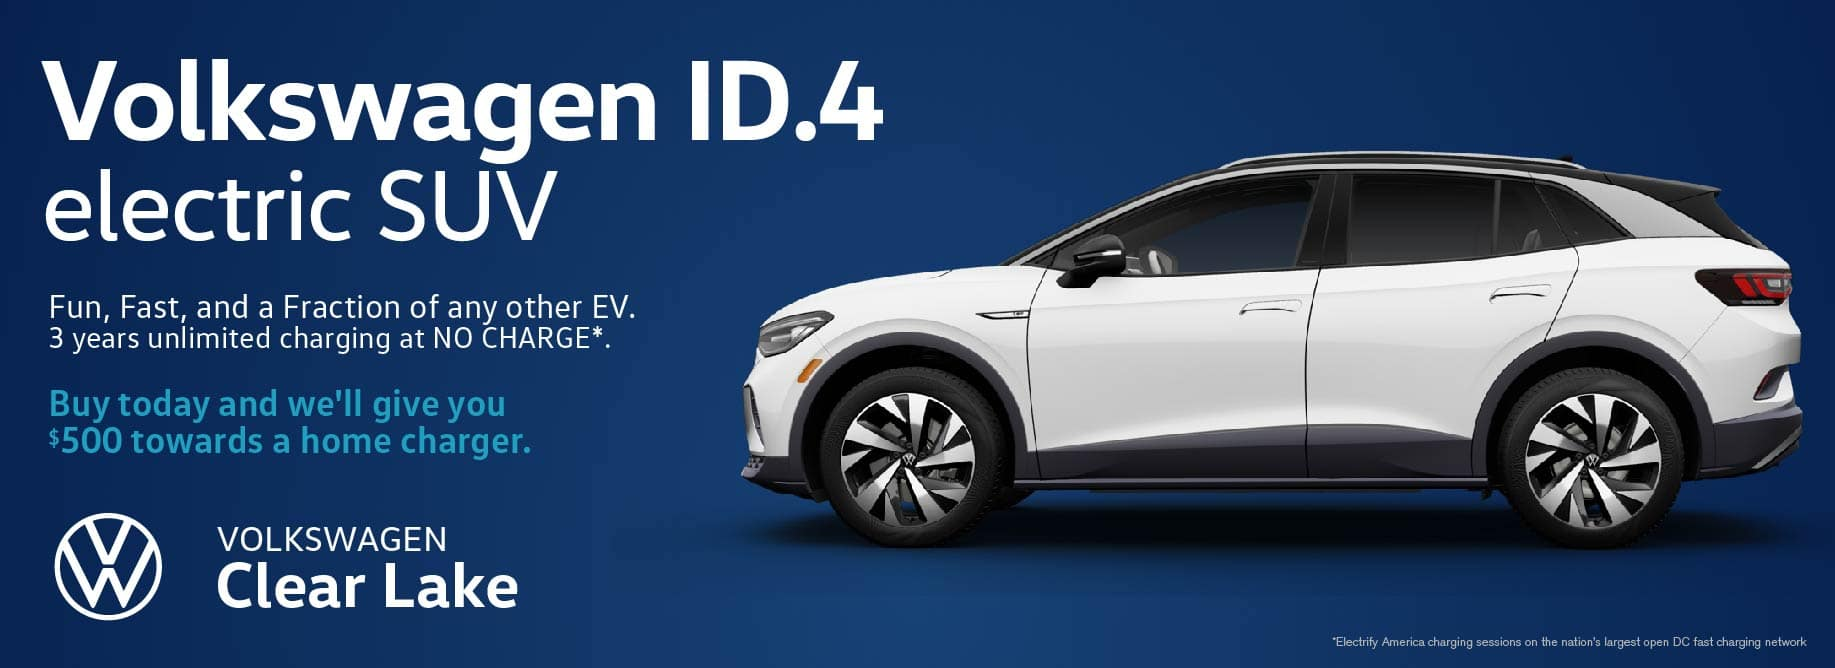 Get a $500 home charger with every VW ID.4 EV purchase at Volkswagen Clear Lake!